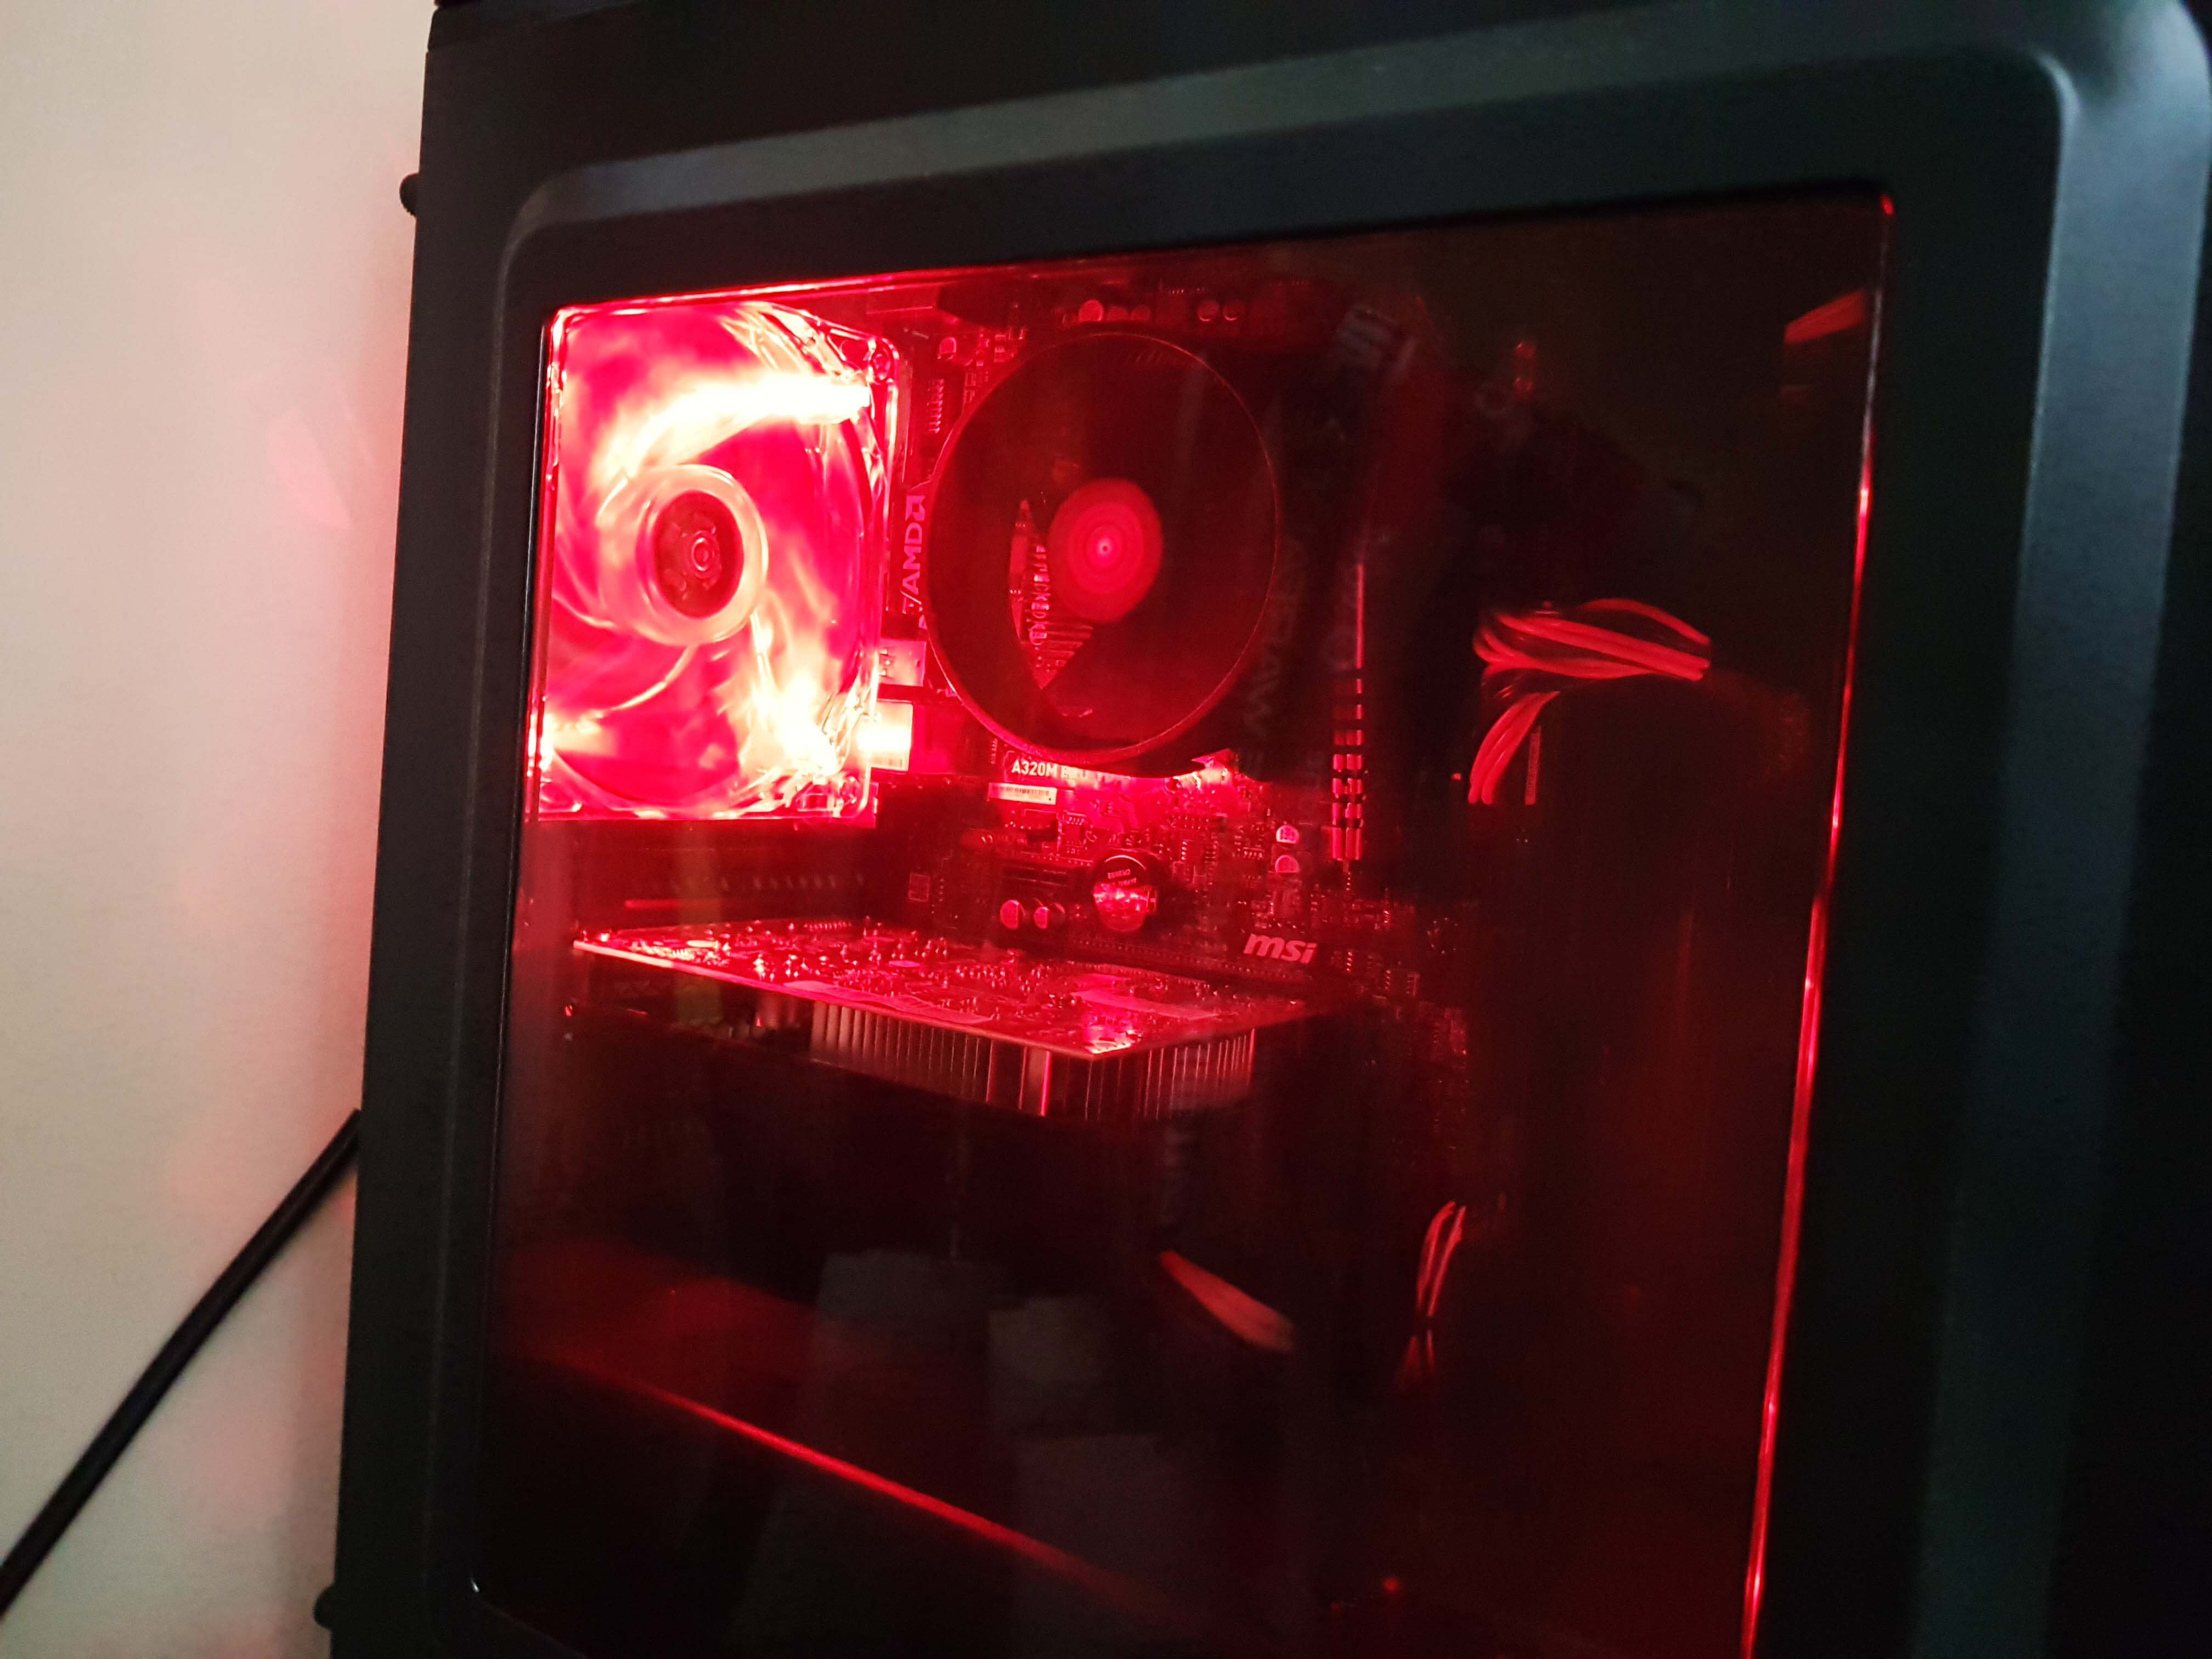 Sistem Gaming Ranger v6 by PC Garage Review Romana si Pareri - Foto 7